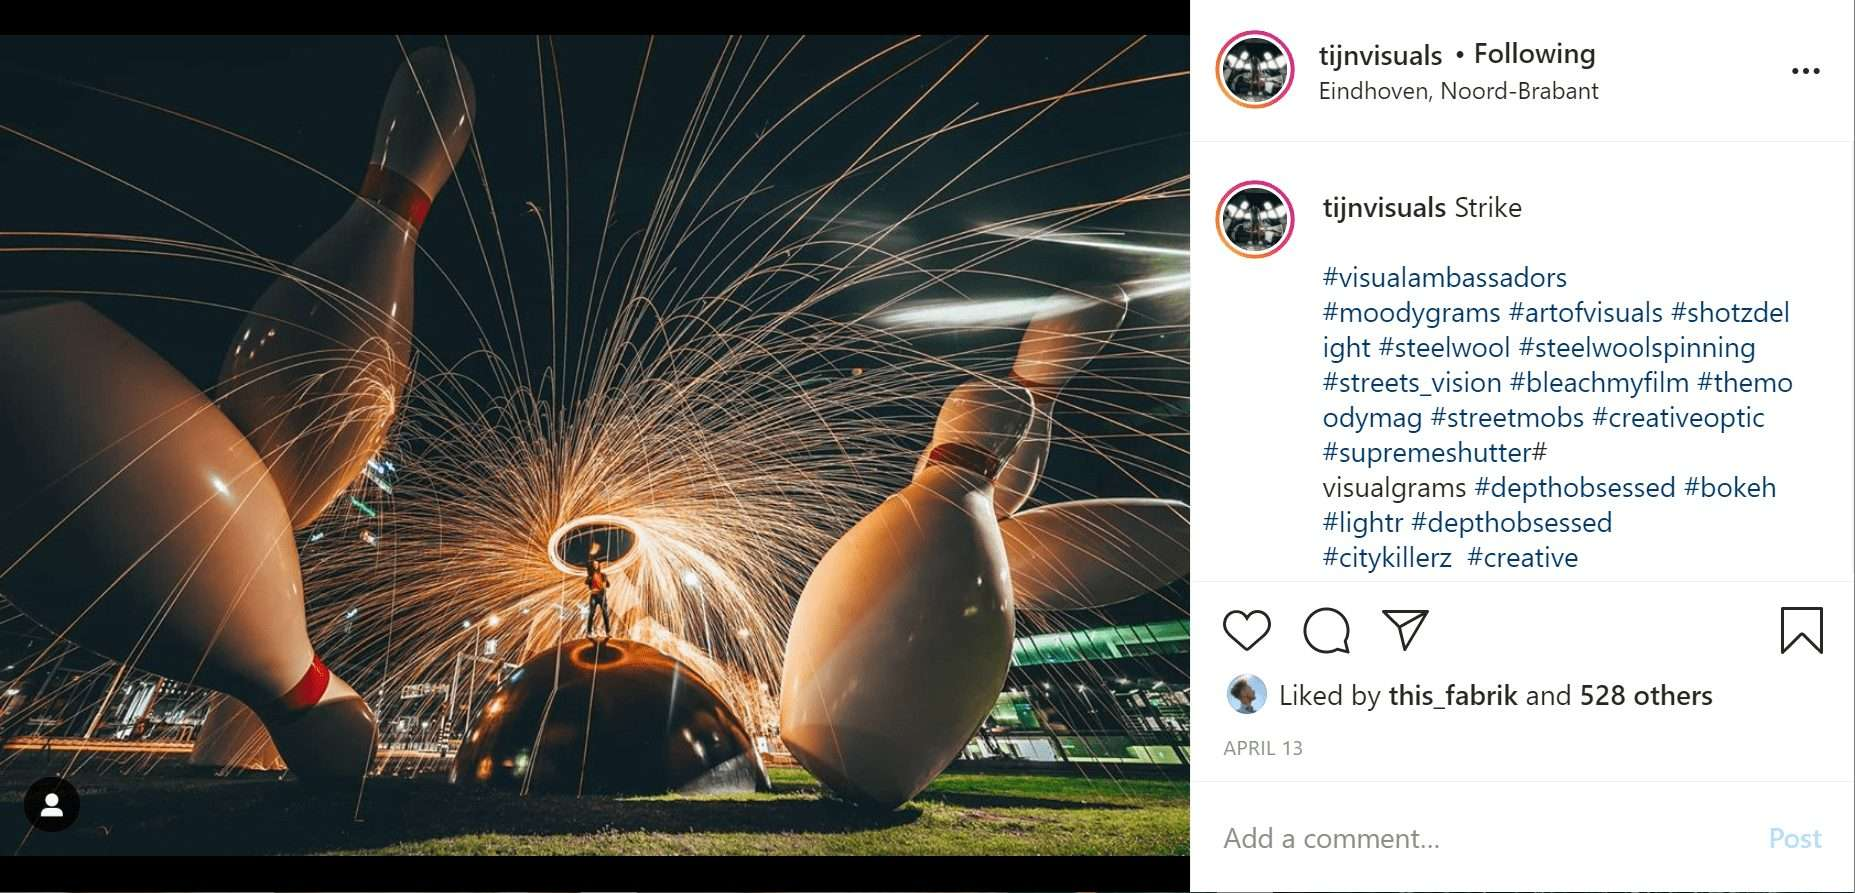 taken at night, a man stands on top of a bowling ball monument moving a sparkler above his head to create a circle of light around him